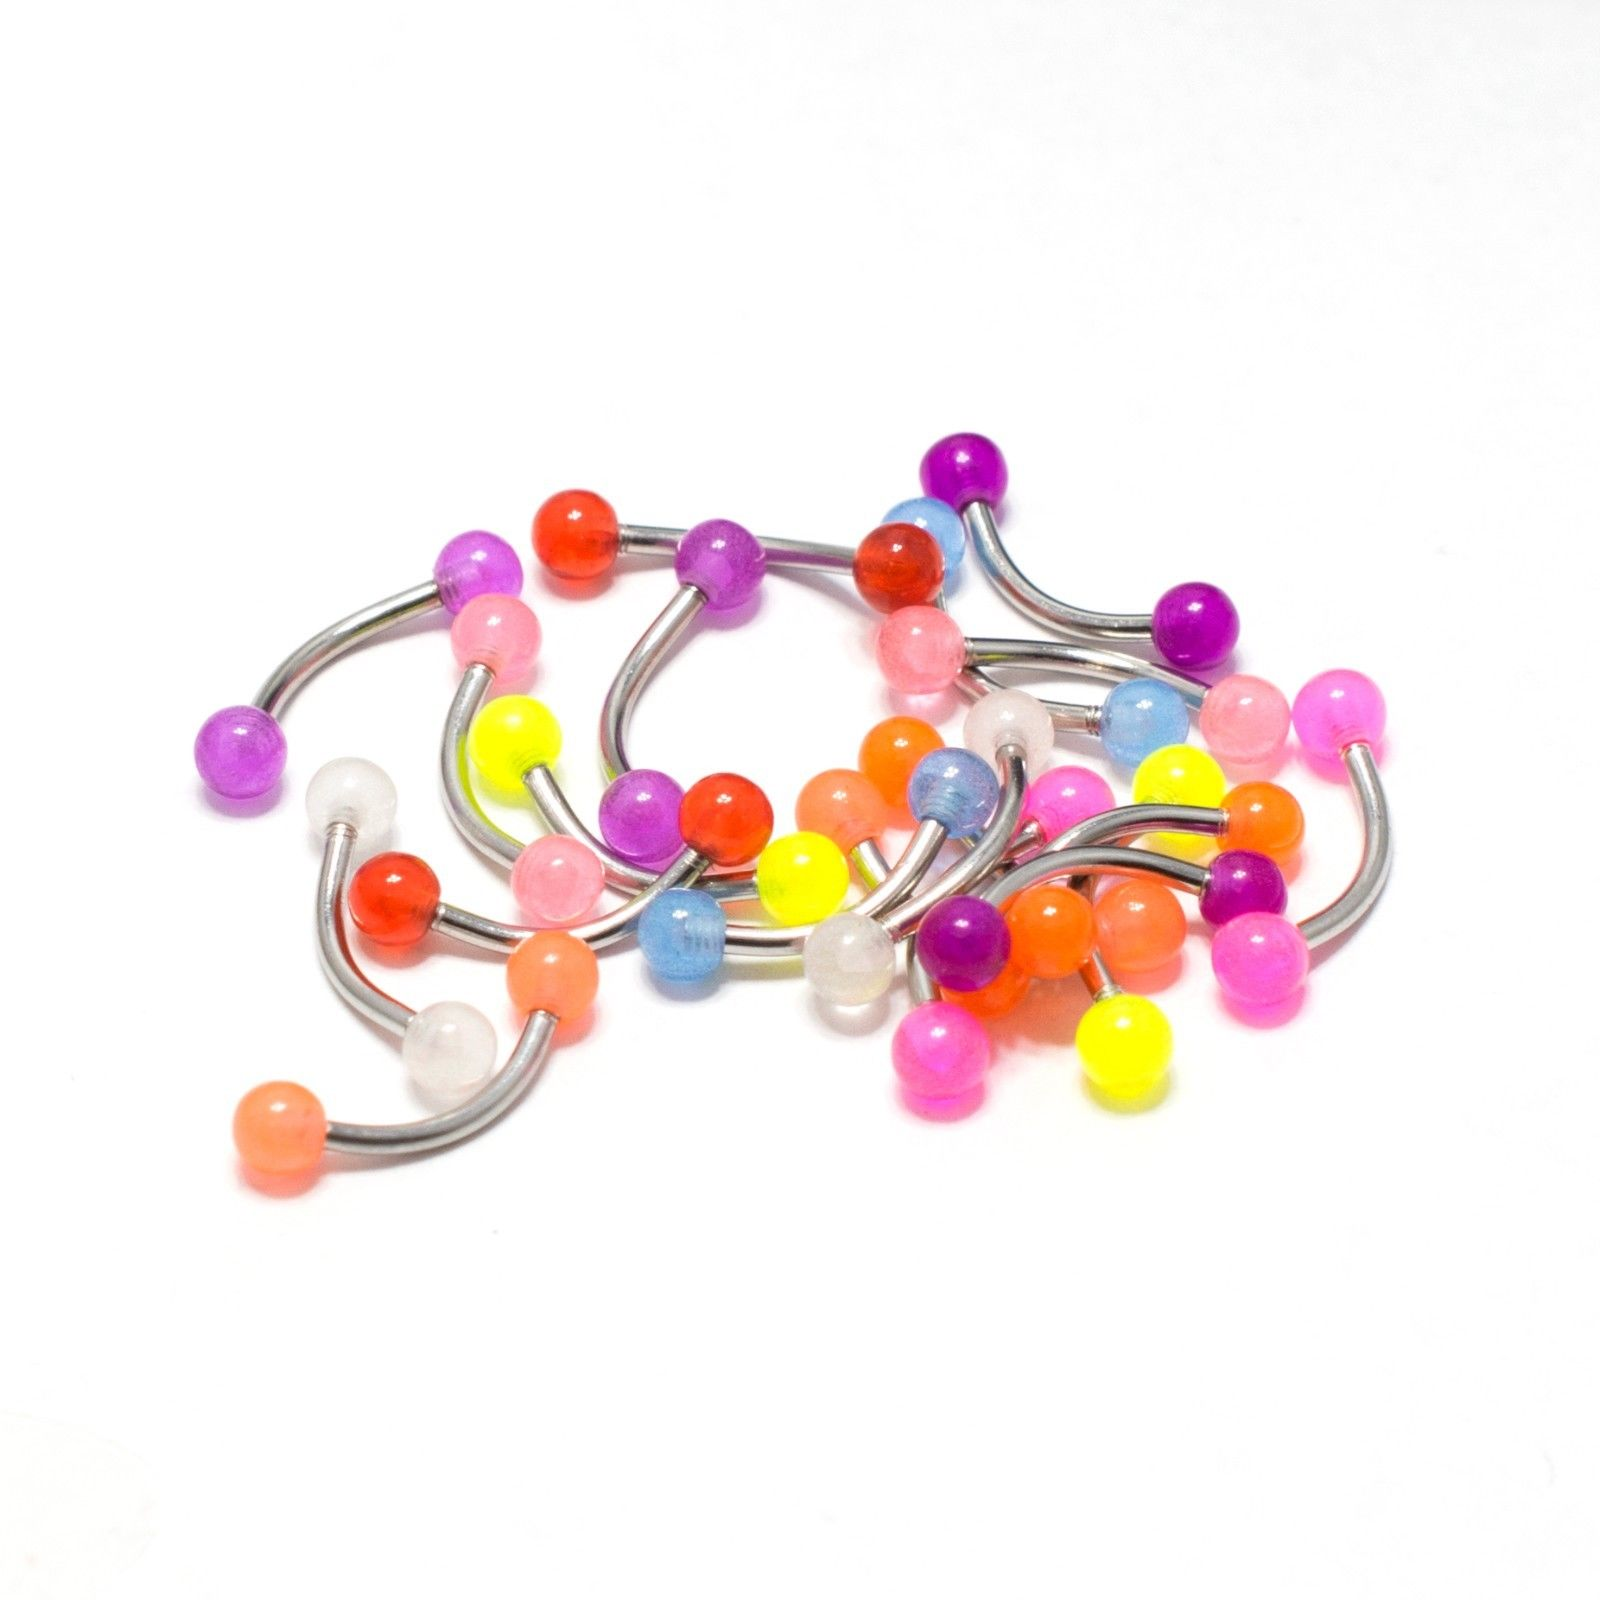 Eyebrow Rings Piercing Curved Barbell 20 Pack Glow In The Dark Tragus Rook 16G